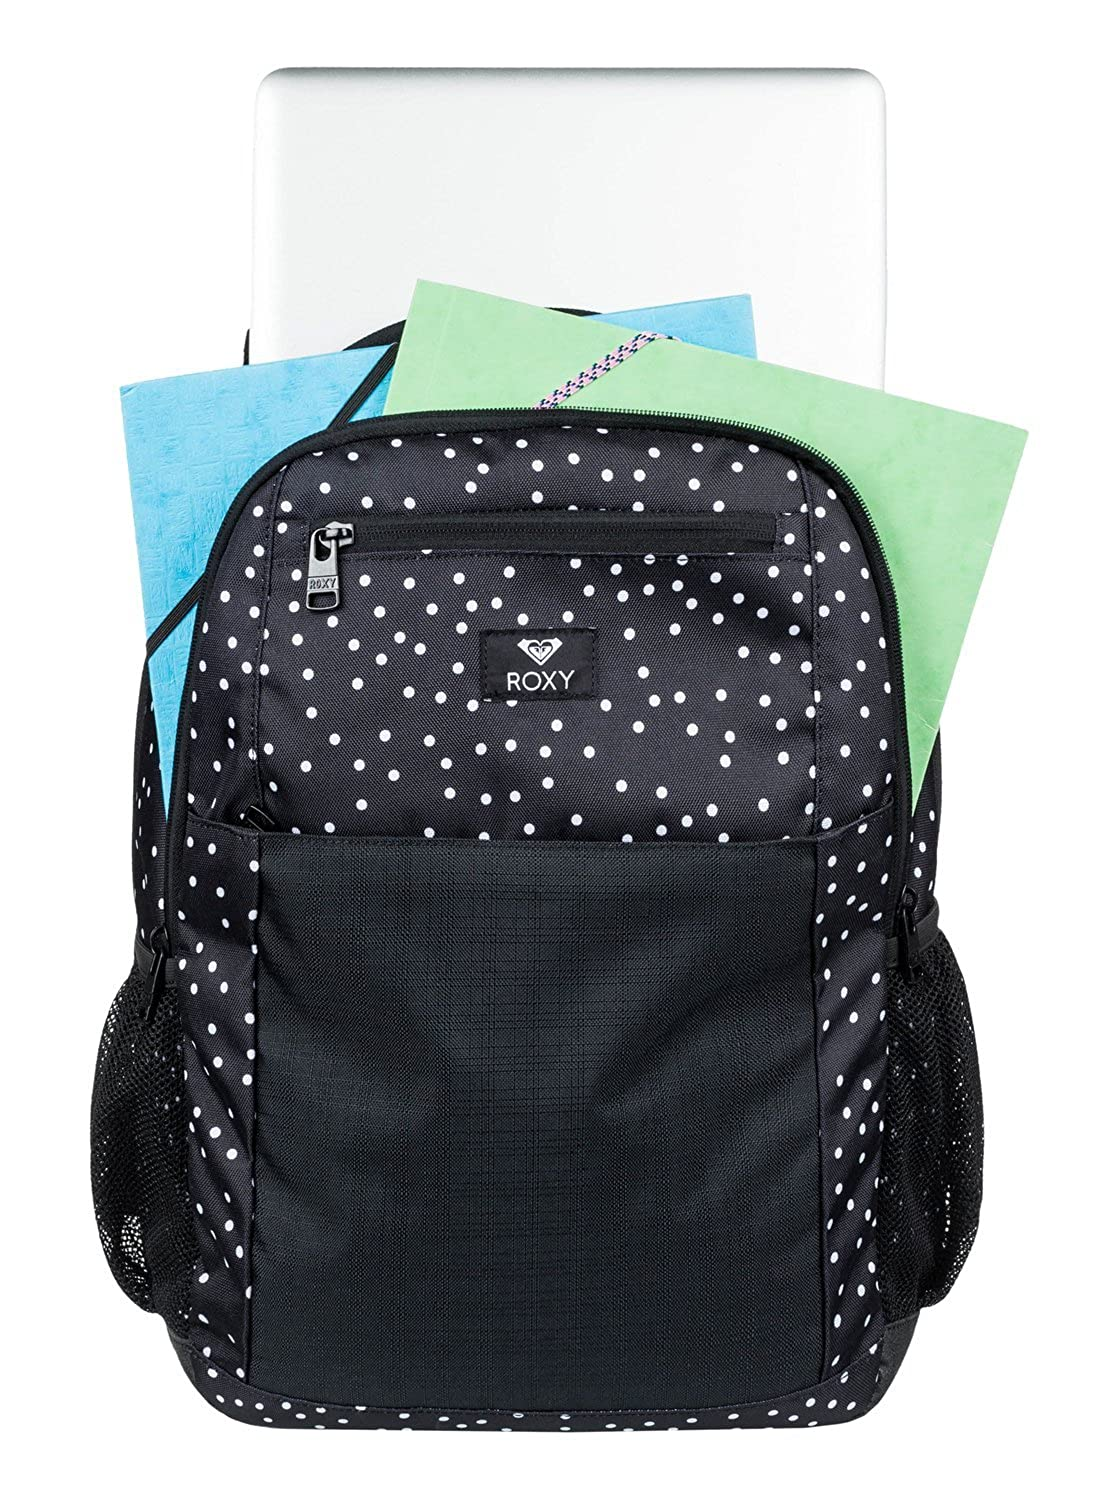 Roxy Here You Are Mix Mochila Mediana, Mujer, Gris/Negro (True Black Dots for Days), 23.5 l: Amazon.es: Deportes y aire libre